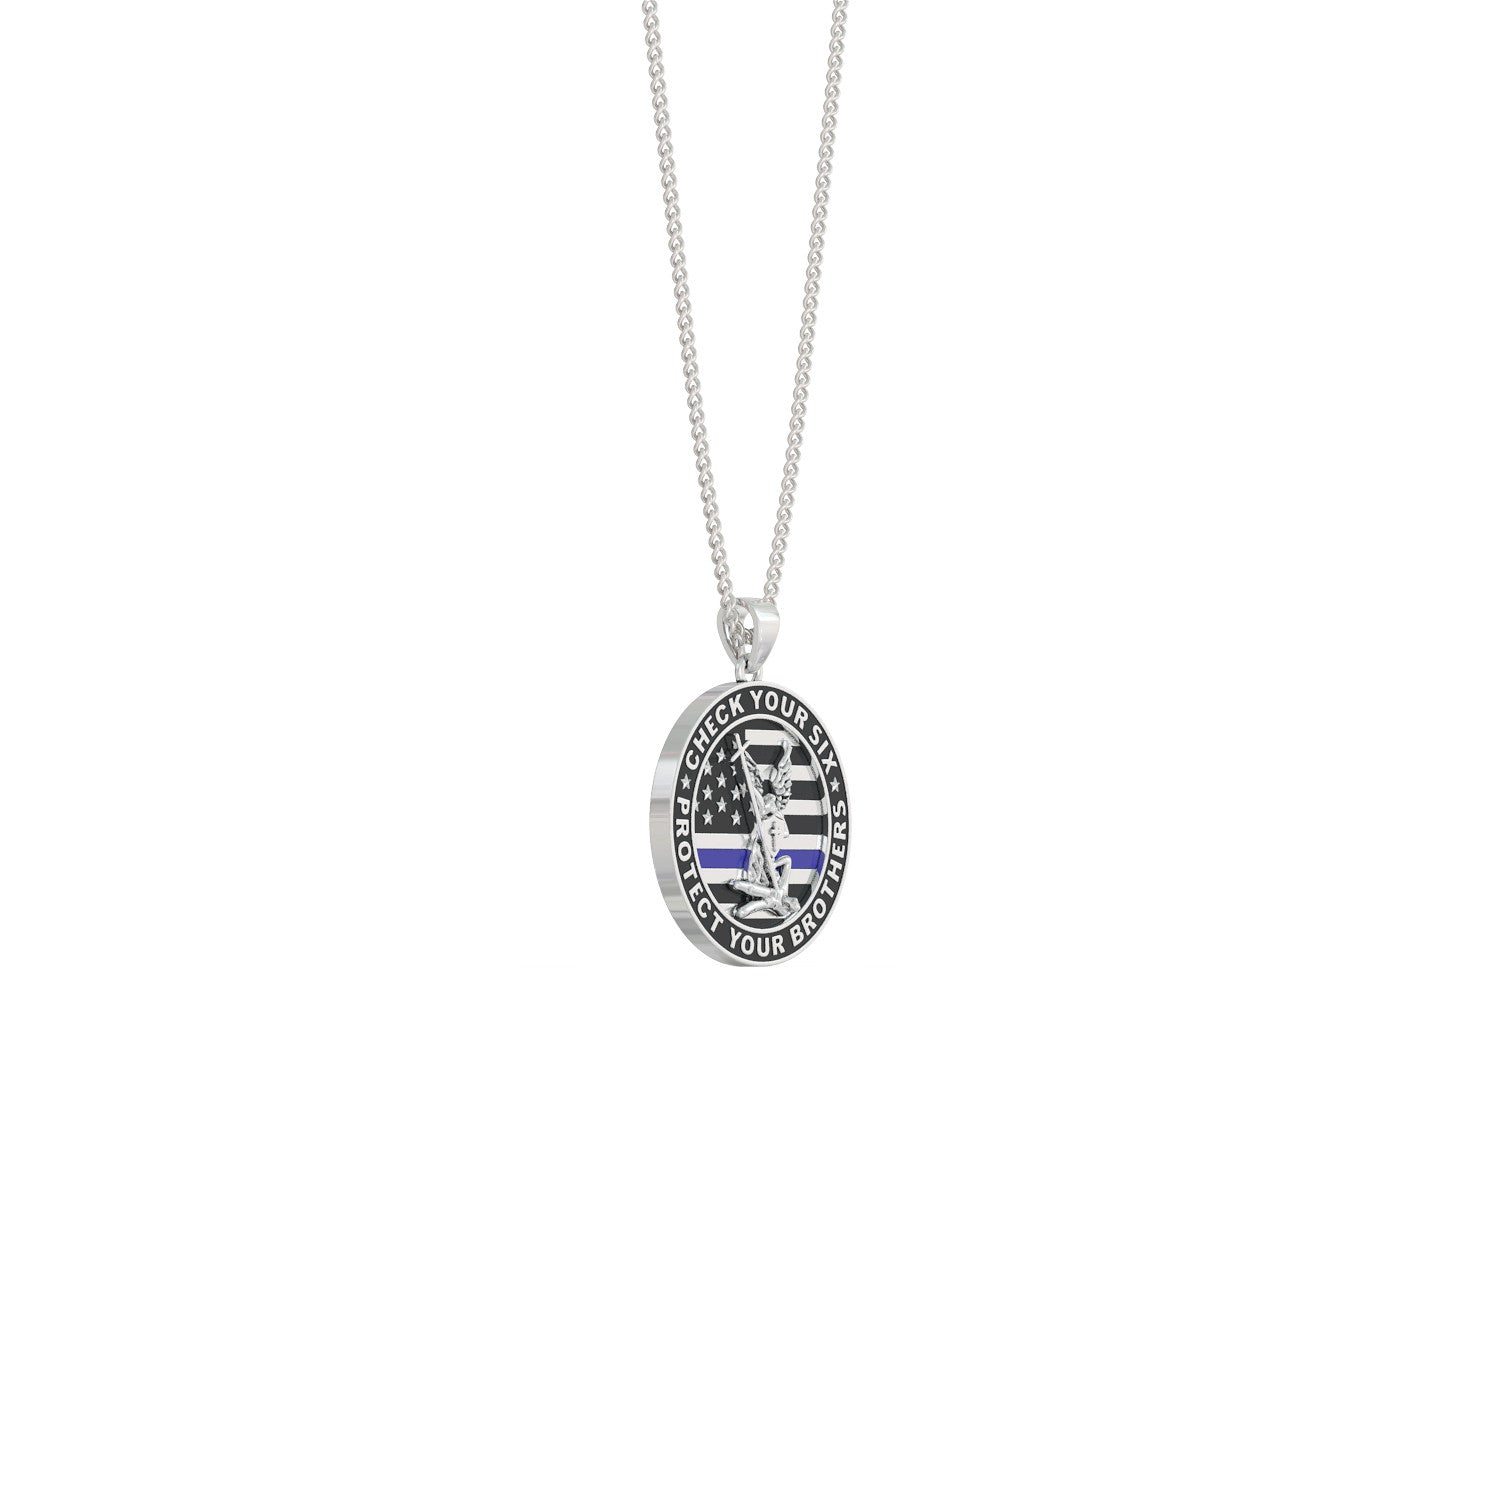 Protect Your Brothers Pendant Necklace